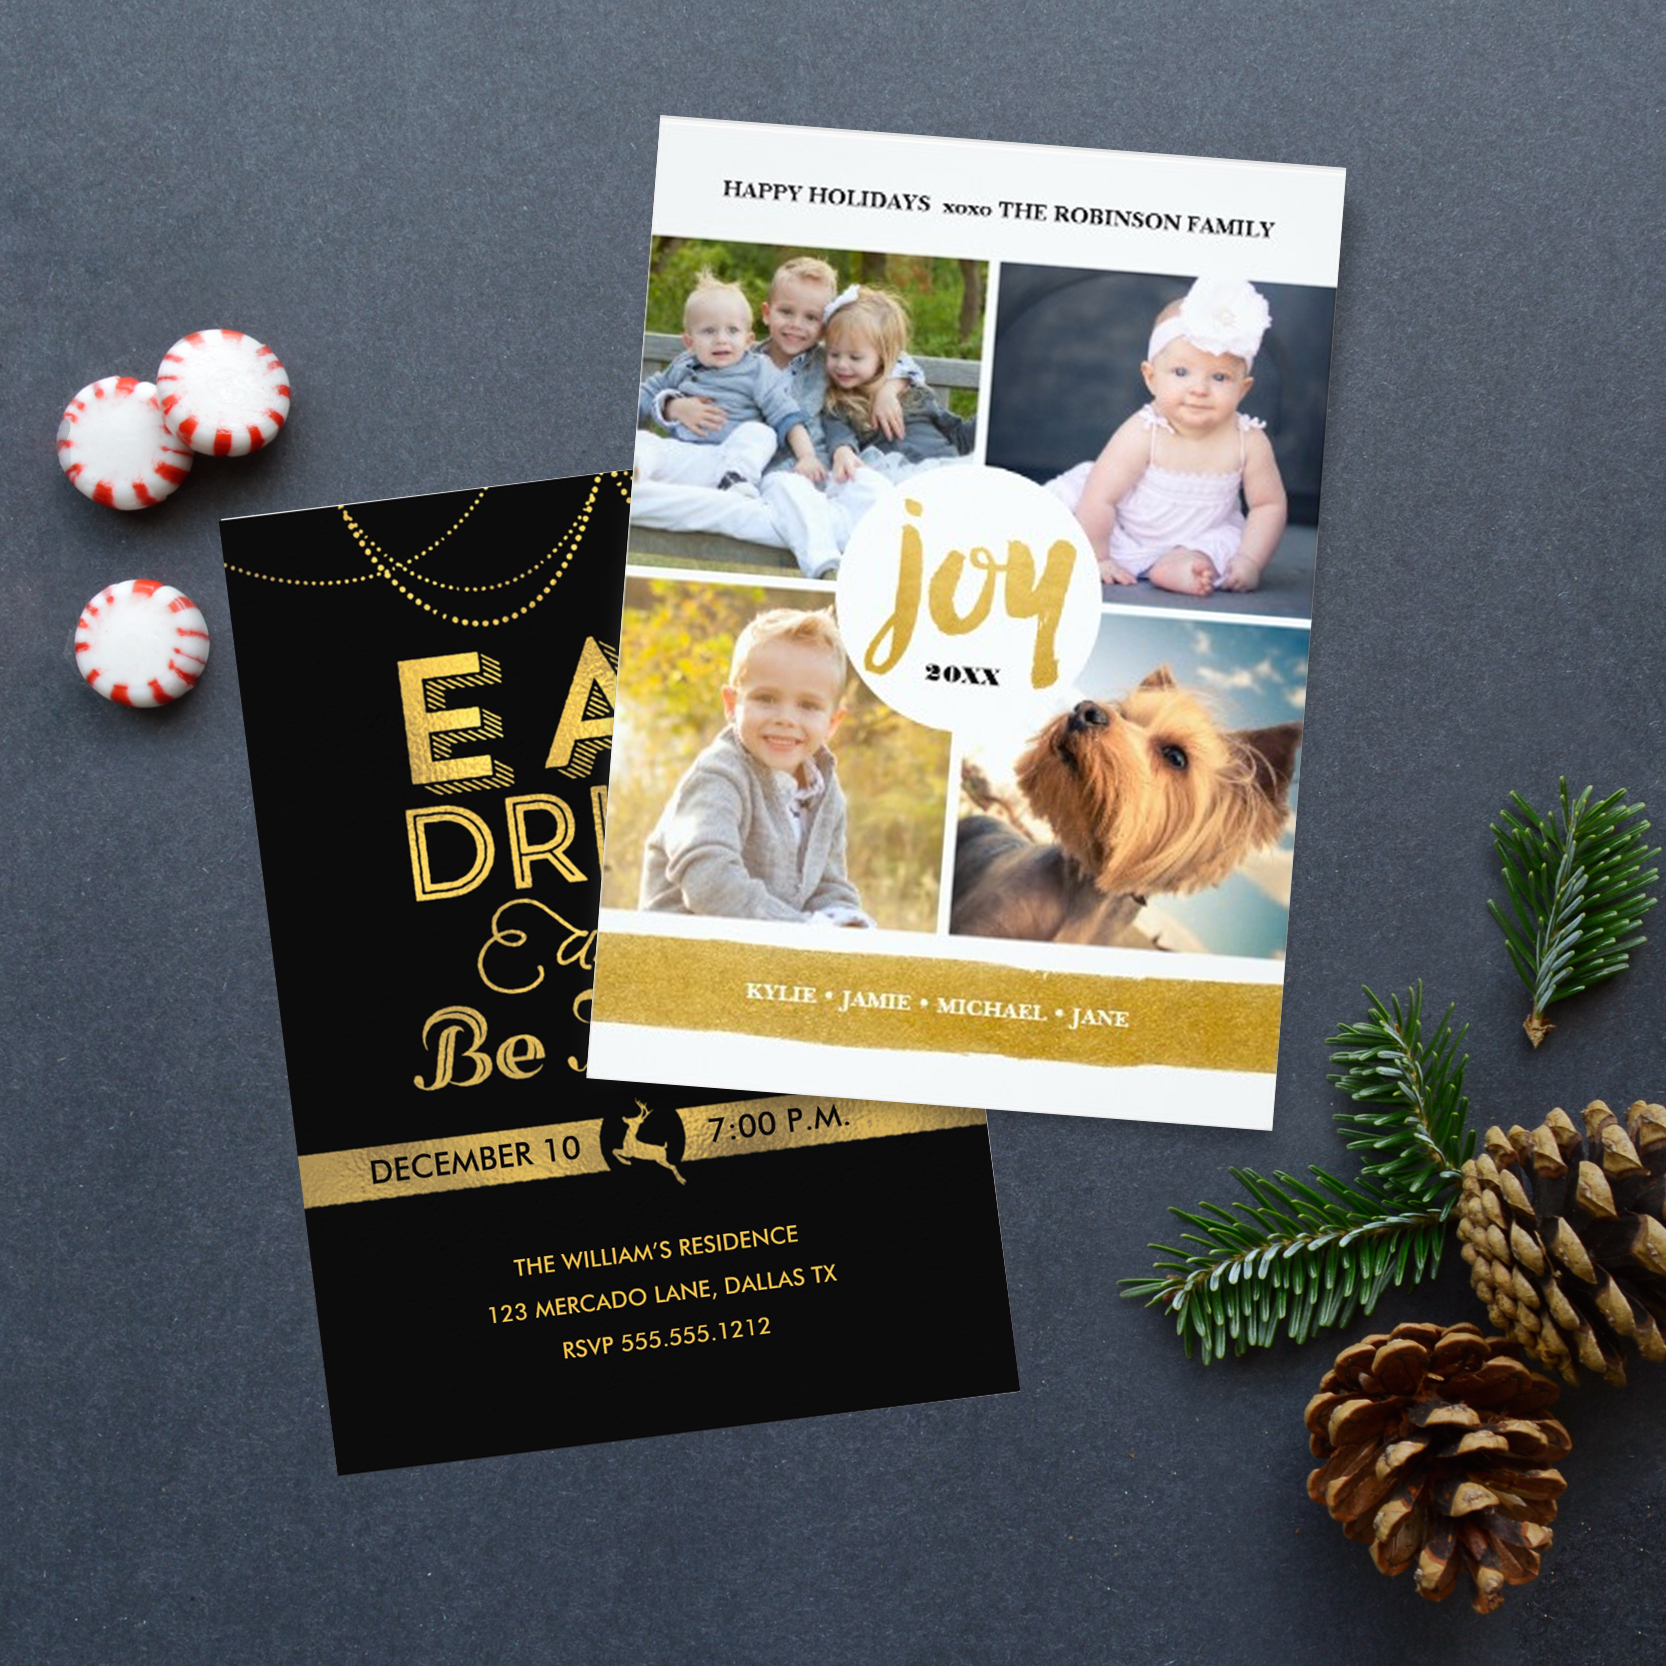 Holiday Greeting & Photo Cards